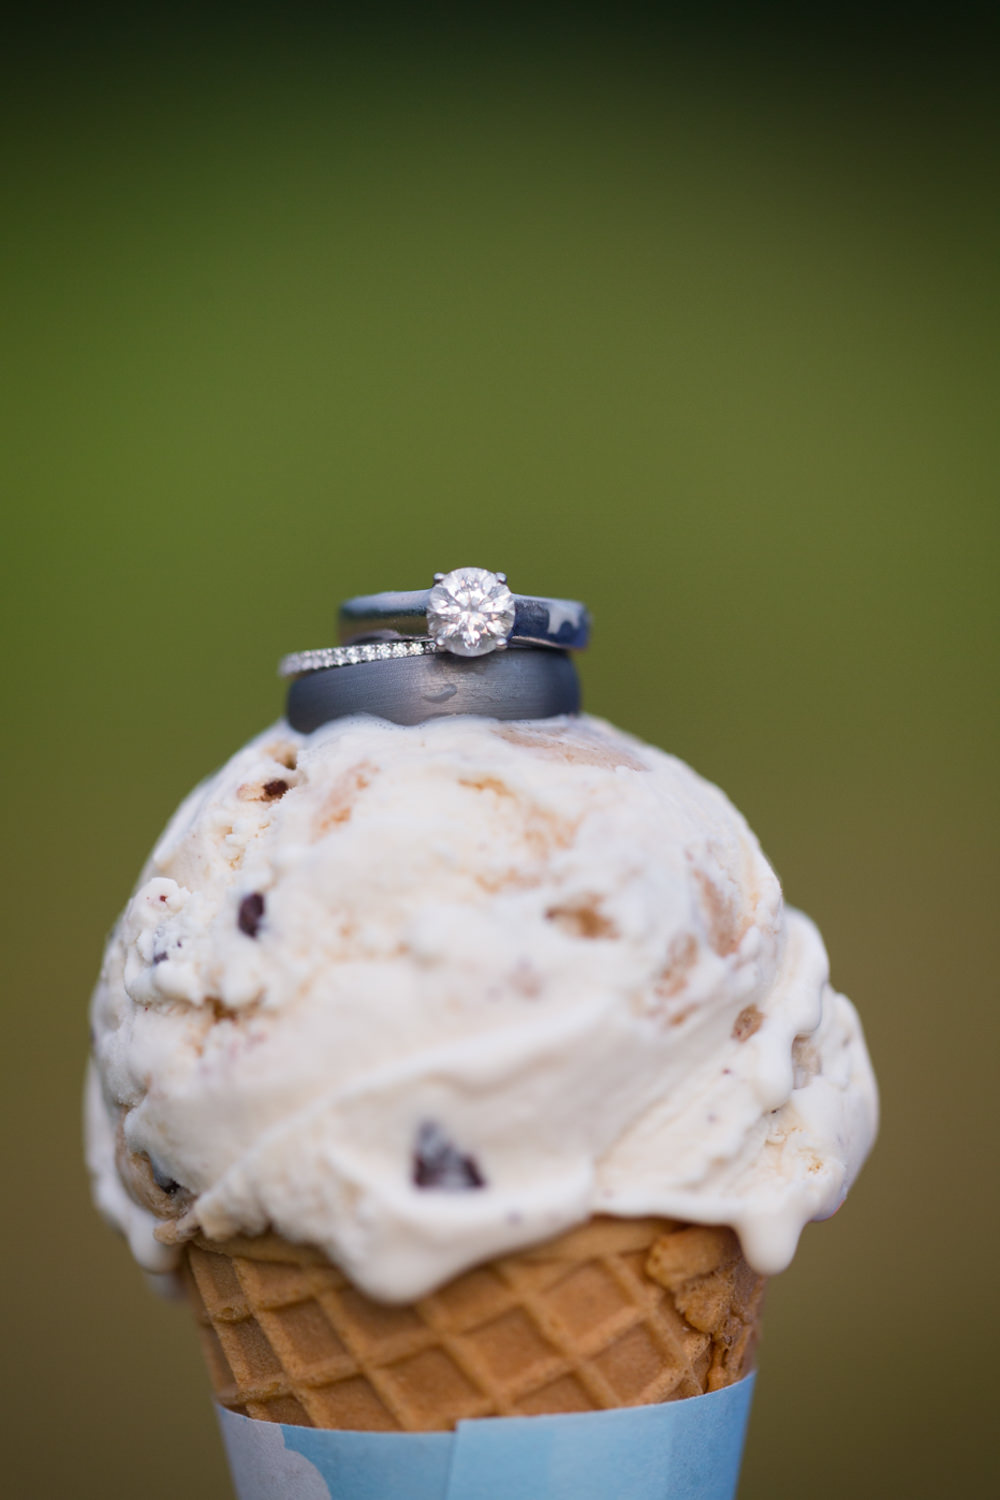 Wedding rings sit atop a Ben & Jerry's ice cream cone in a photo by food photographer Stina Booth